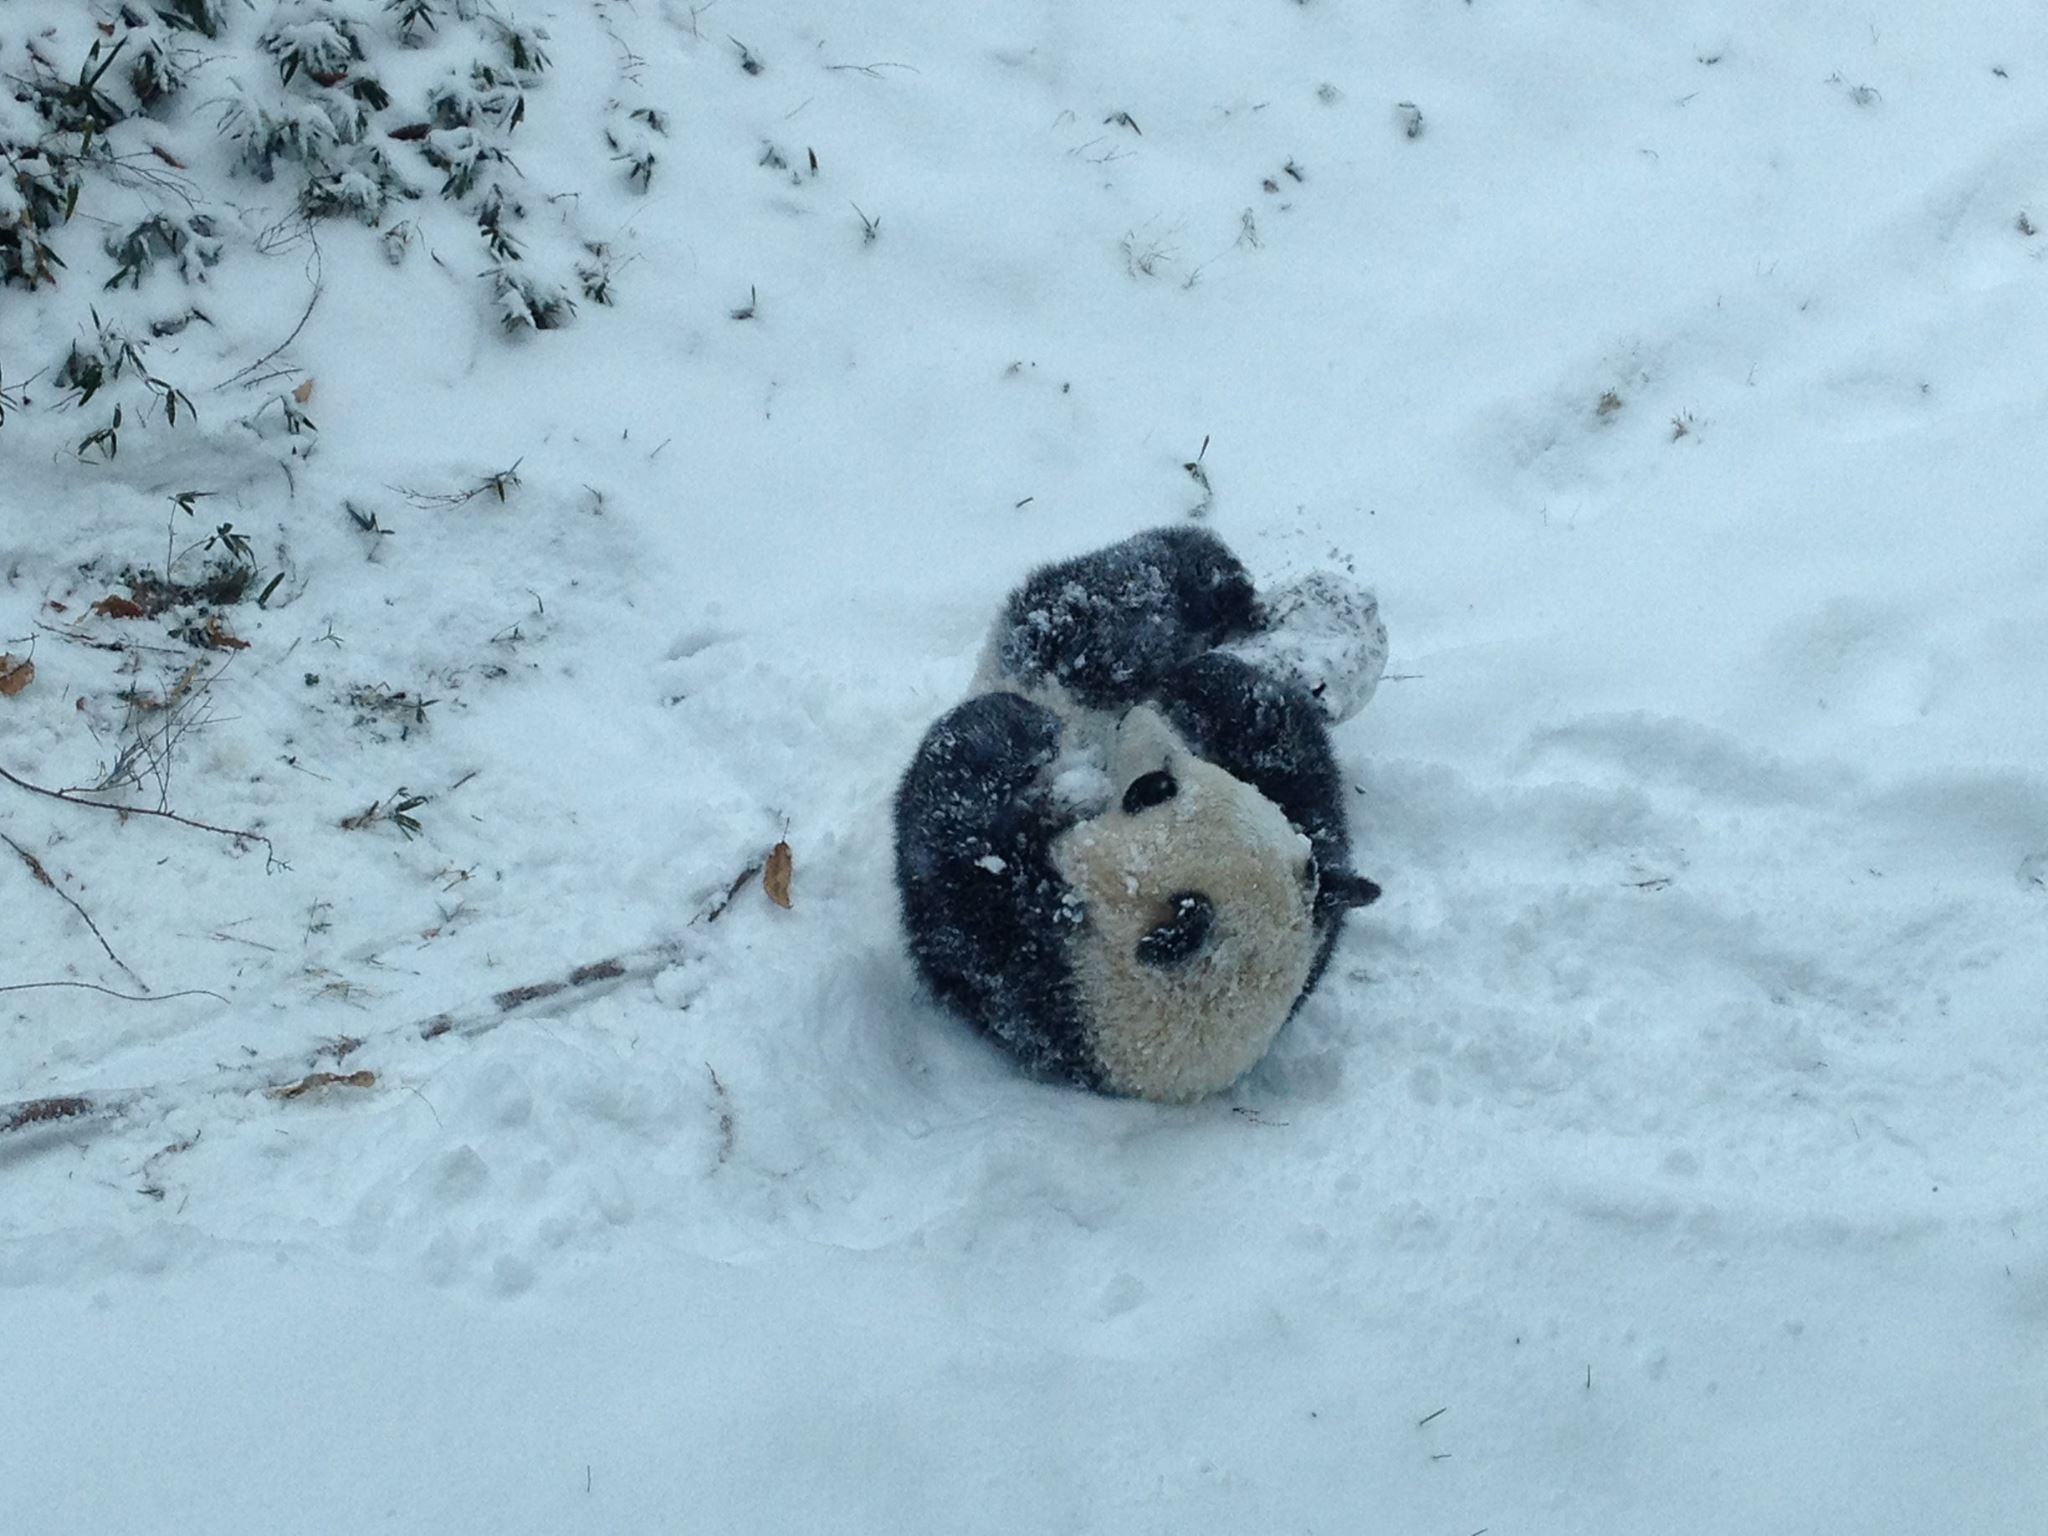 This is what happiness looks like, Bao Bao the panda experiences her first real snow!